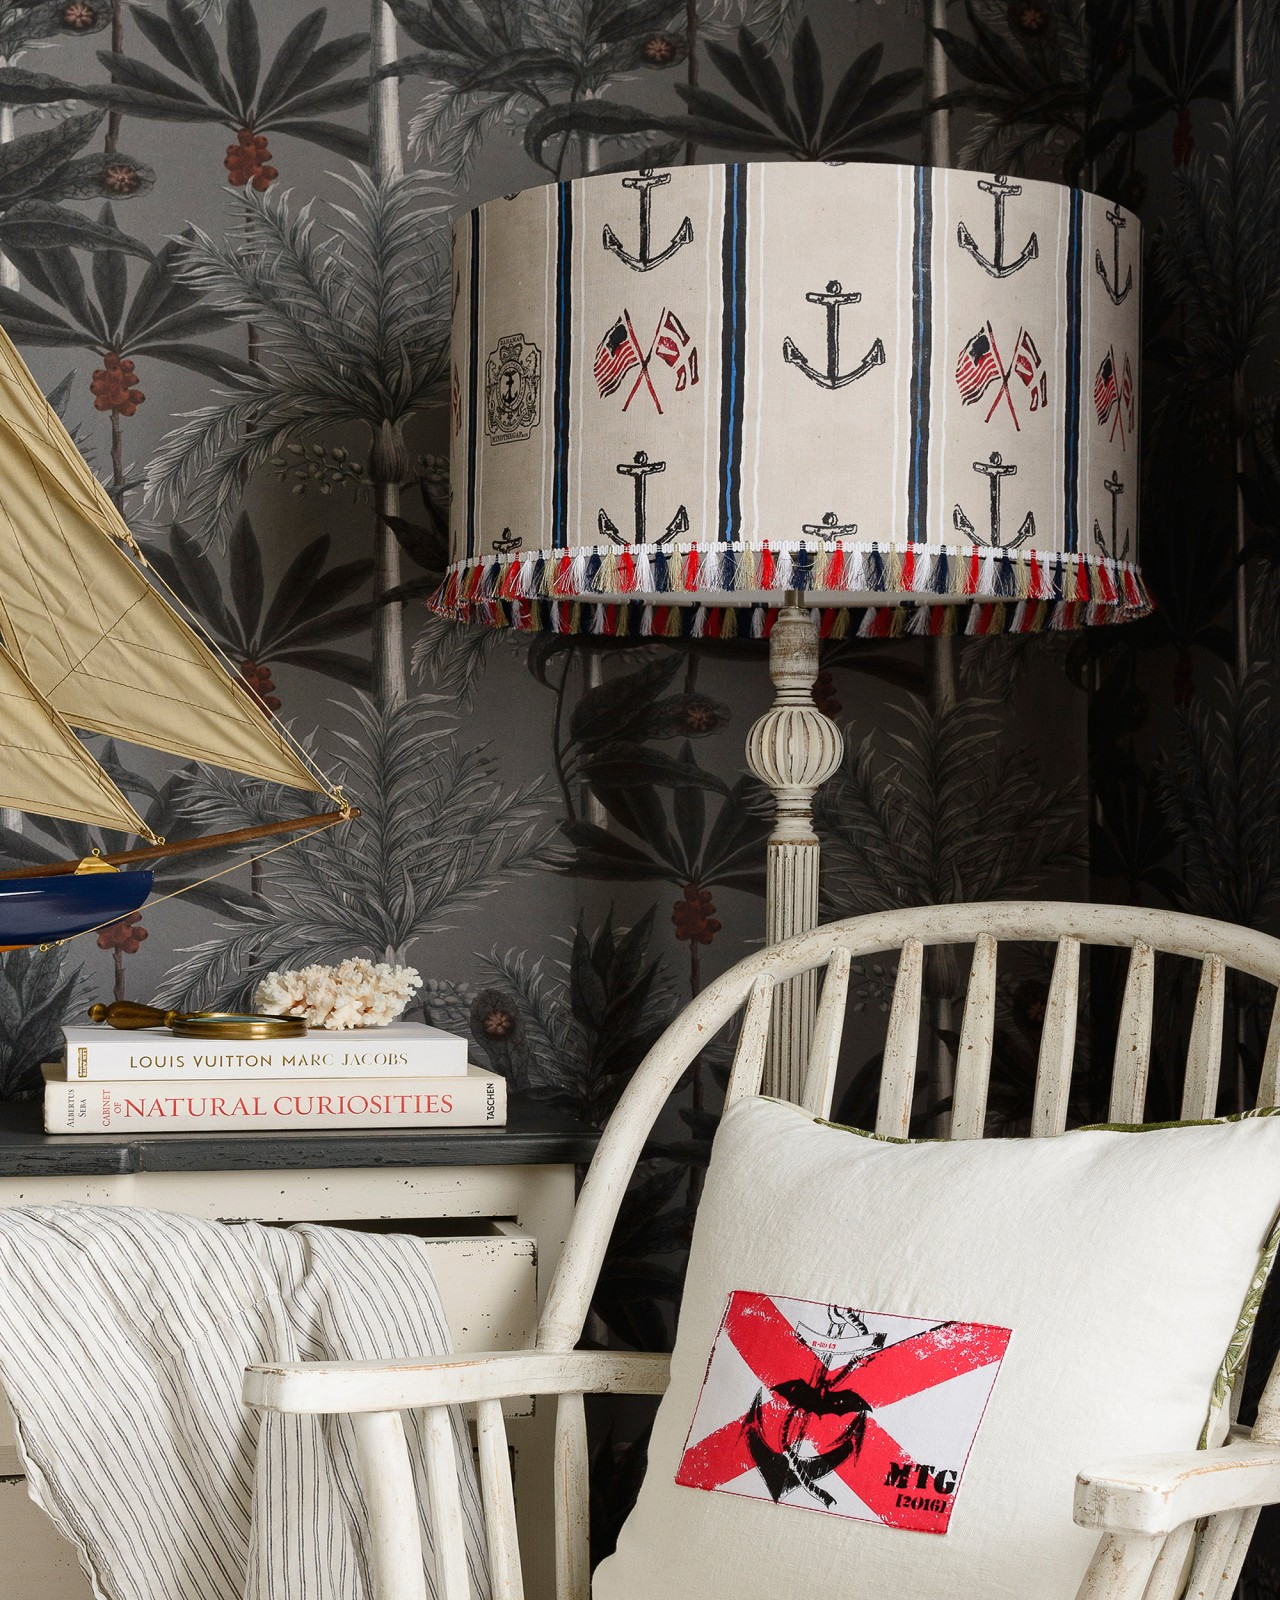 BUCCANEERS OF BAHAMAS Lampshade